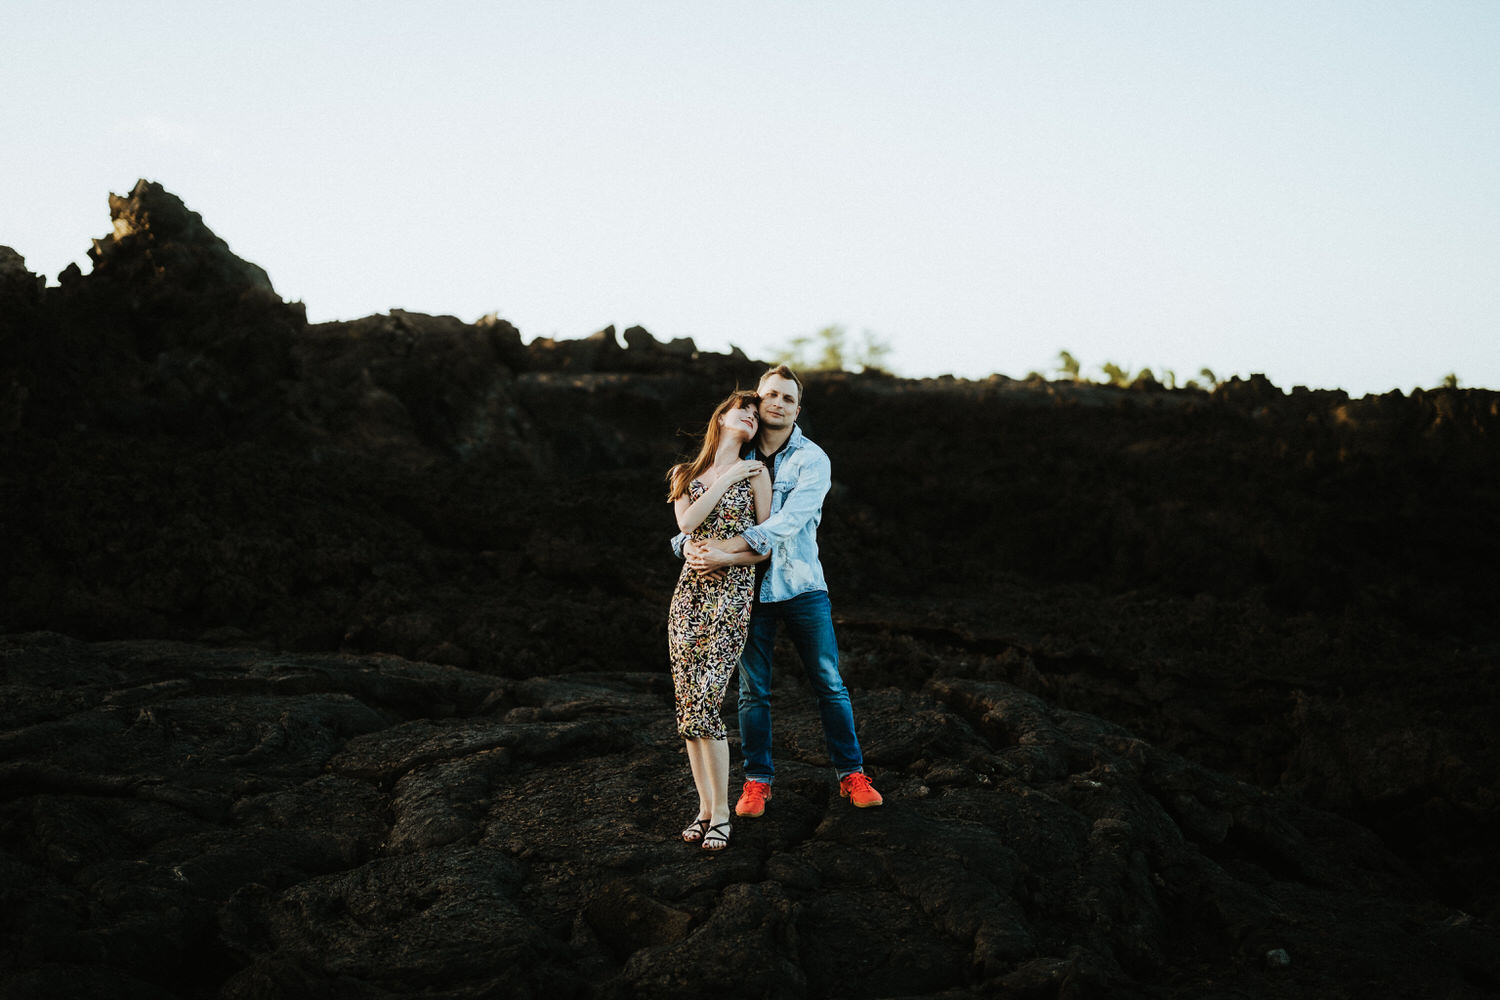 hawaii engagement, big island engagement, big island engagedment photographer, hawaii secret proposal, big island secret proposal, big island photographer, kona photographer, kona engagement, big island photo session, big island beaches, kekaha state park, Mahai'ulu Bay, hawaii photo session